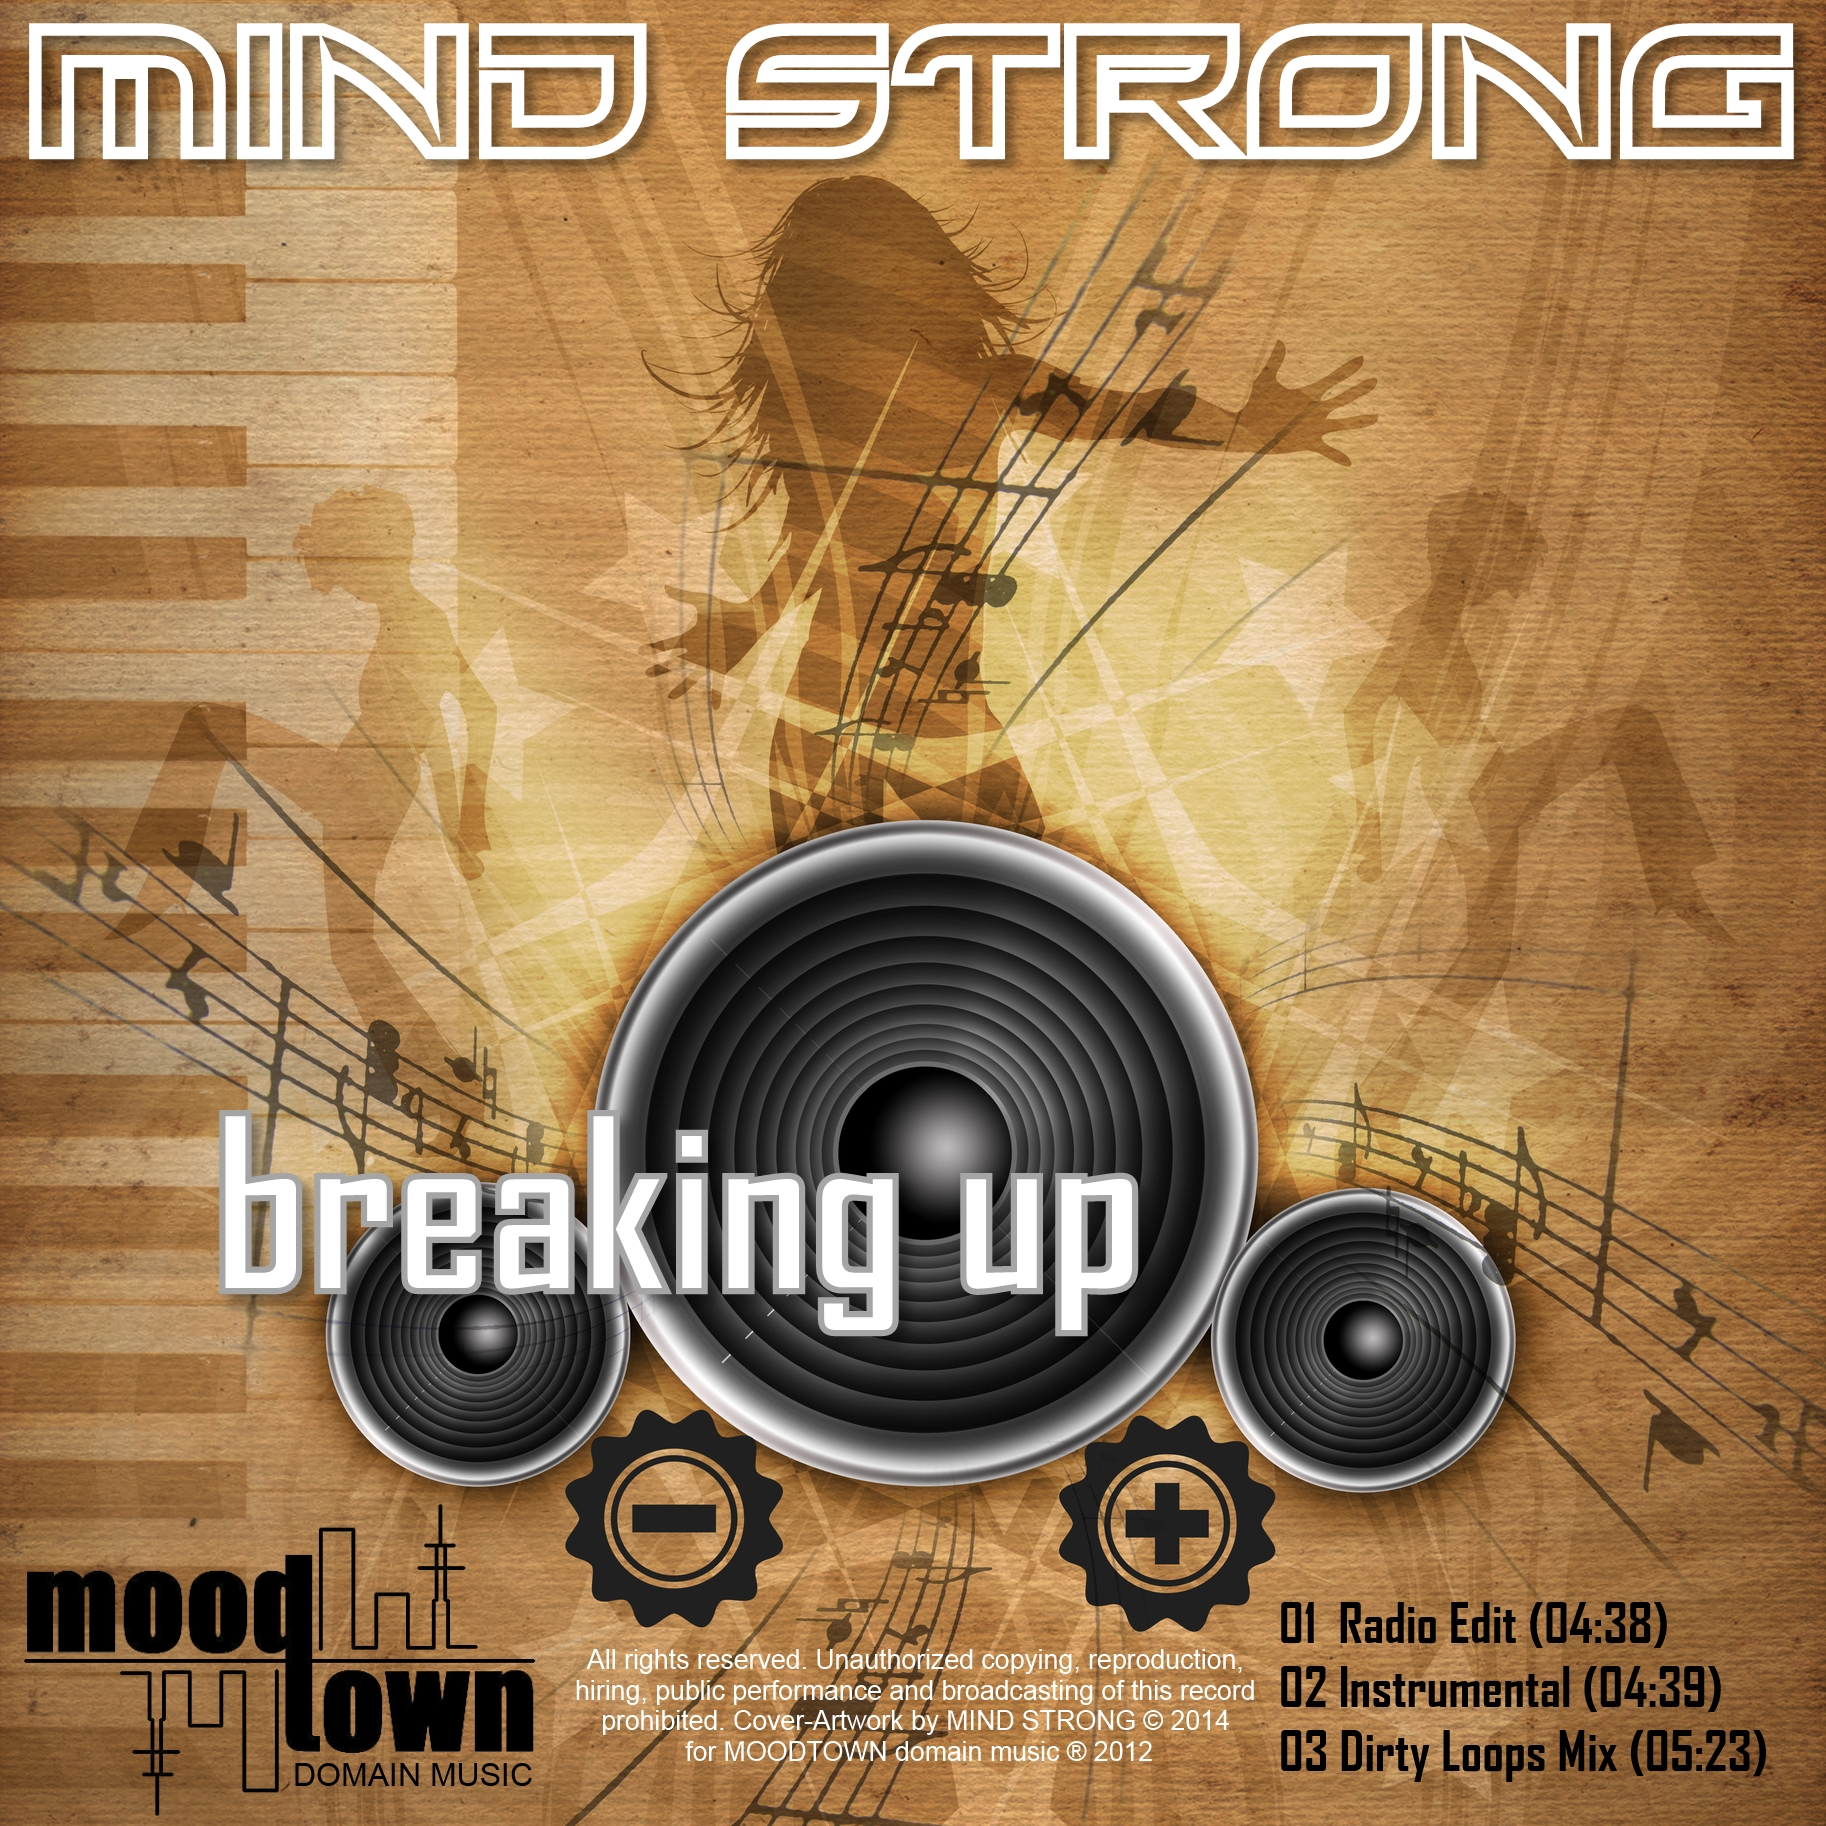 Cover of MIND STRONGs single release BREAKING UP